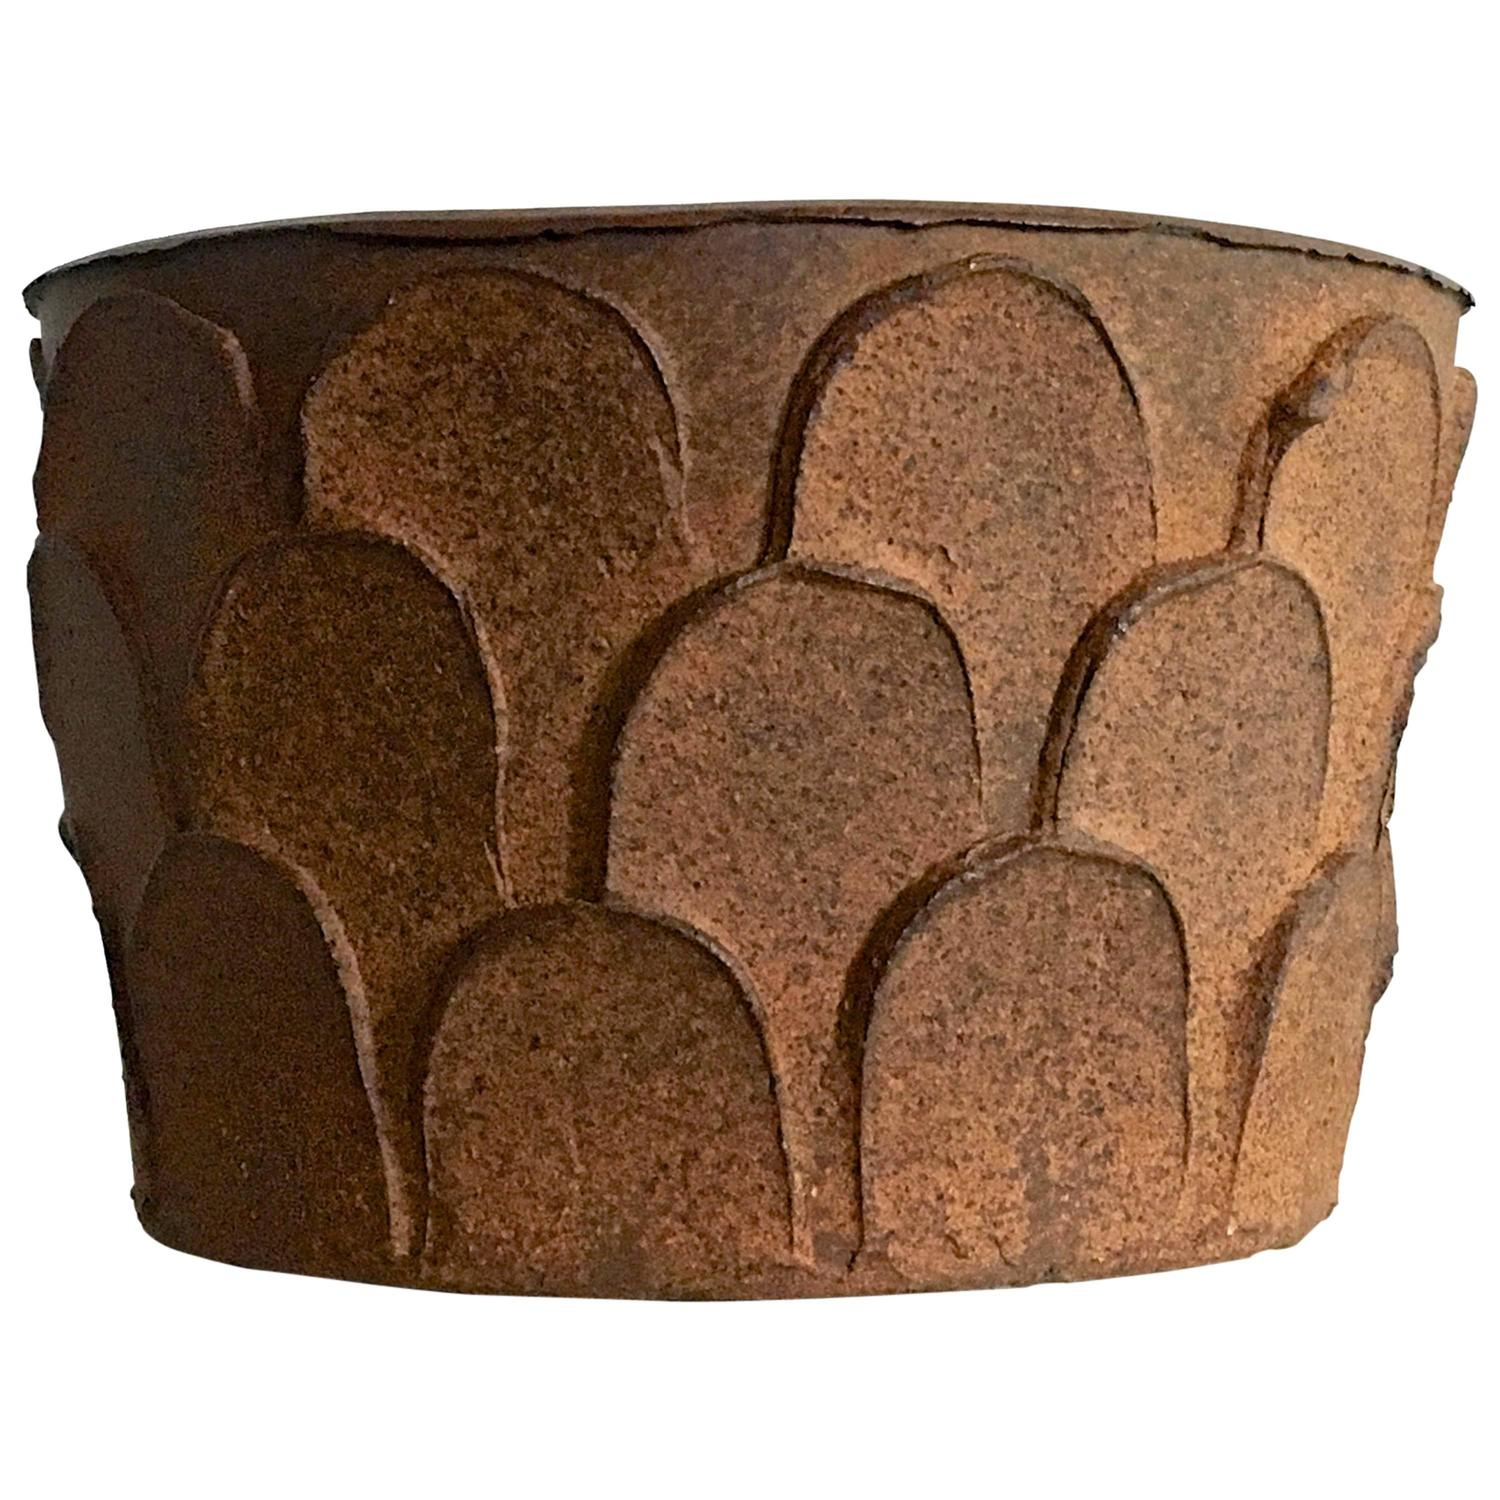 David Cressey Stoneware Planter, Model 4112 - The Exchange Int